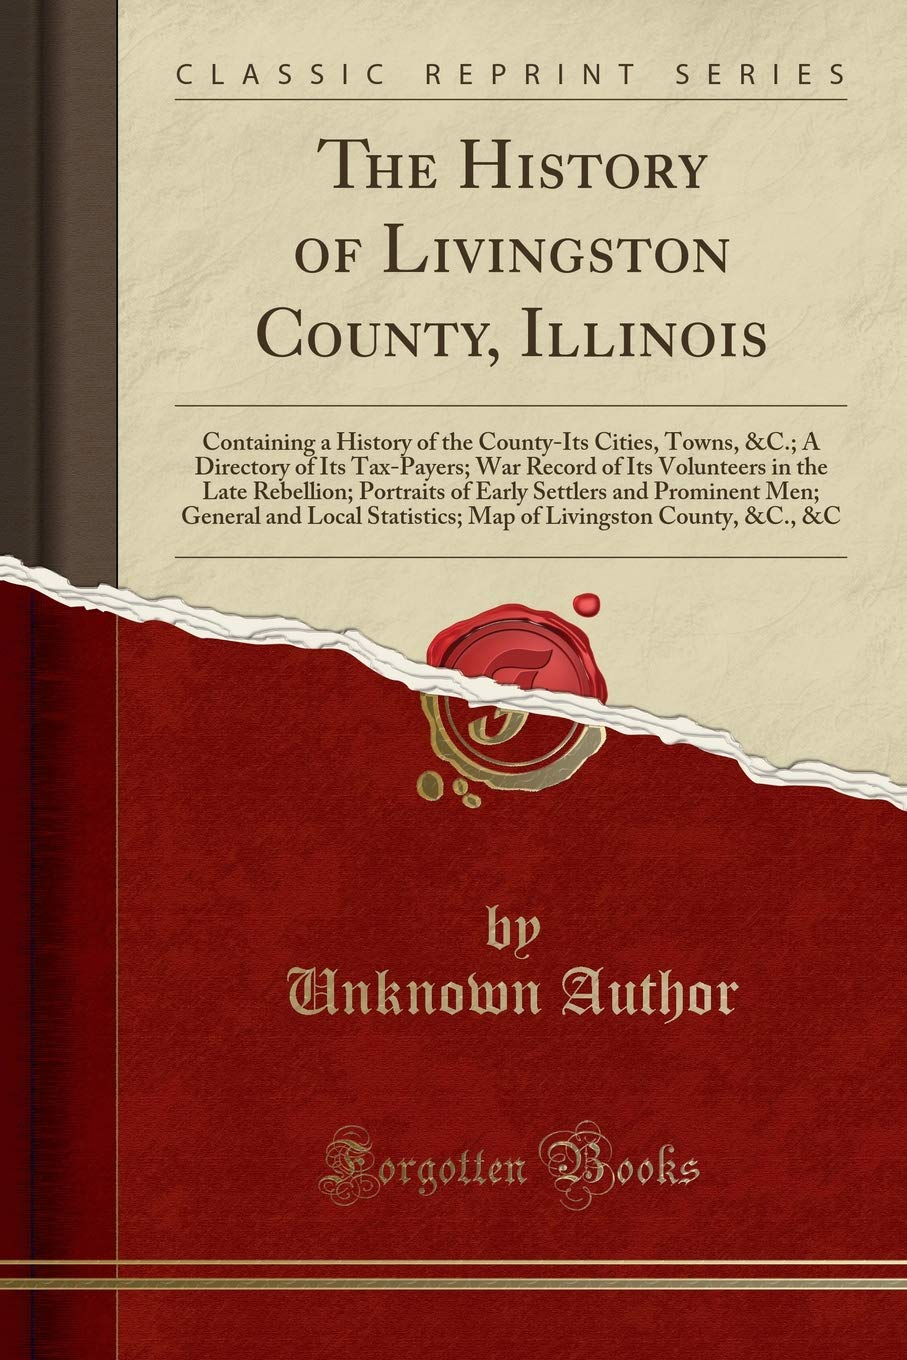 Download The History of Livingston County, Illinois: Containing a History of the County-Its Cities, Towns, &C.; A Directory of Its Tax-Payers; War Record of ... and Prominent Men; General and Local Stat ebook